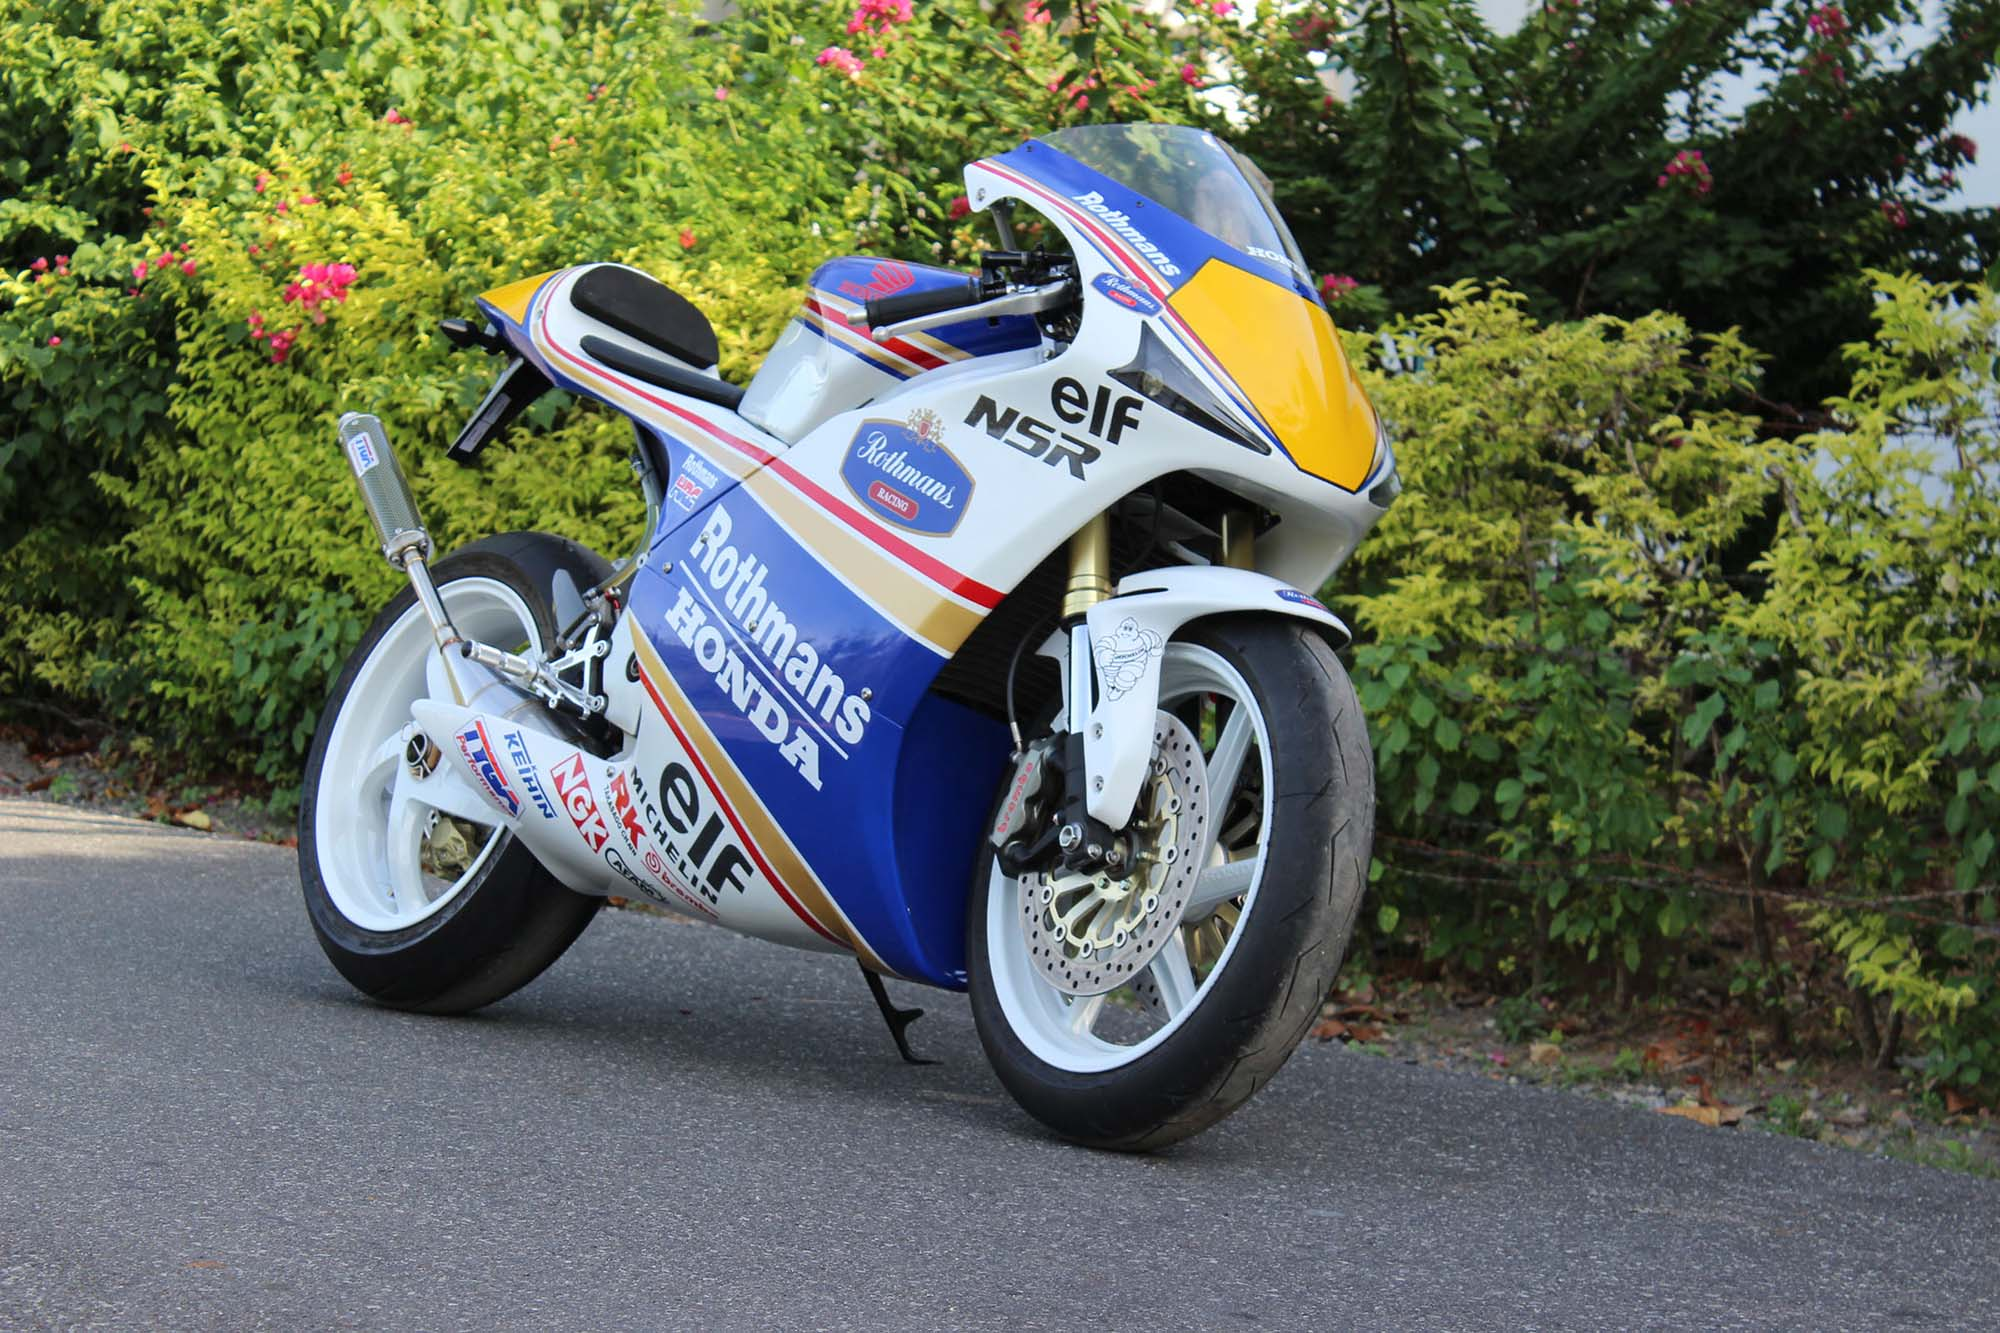 Motorcycle Led Kit >> Is This What a Modern Honda NSR250R Would Look Like? - Asphalt & Rubber